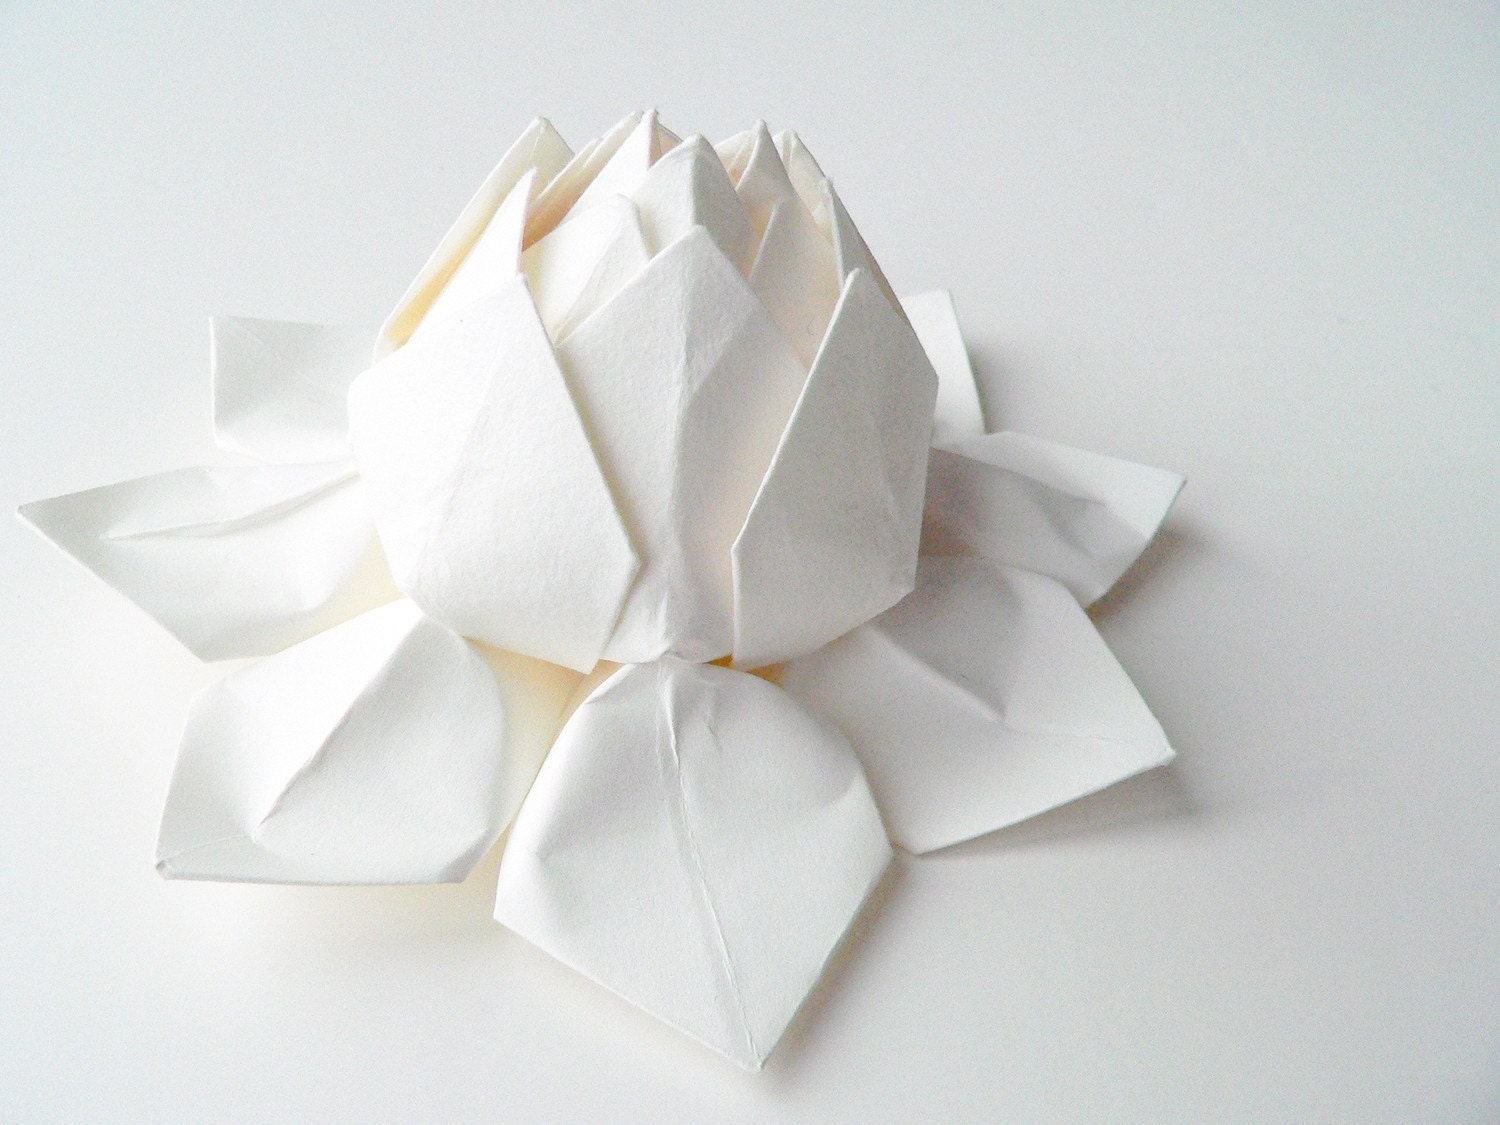 How To Make An Origami Shirt And Tie